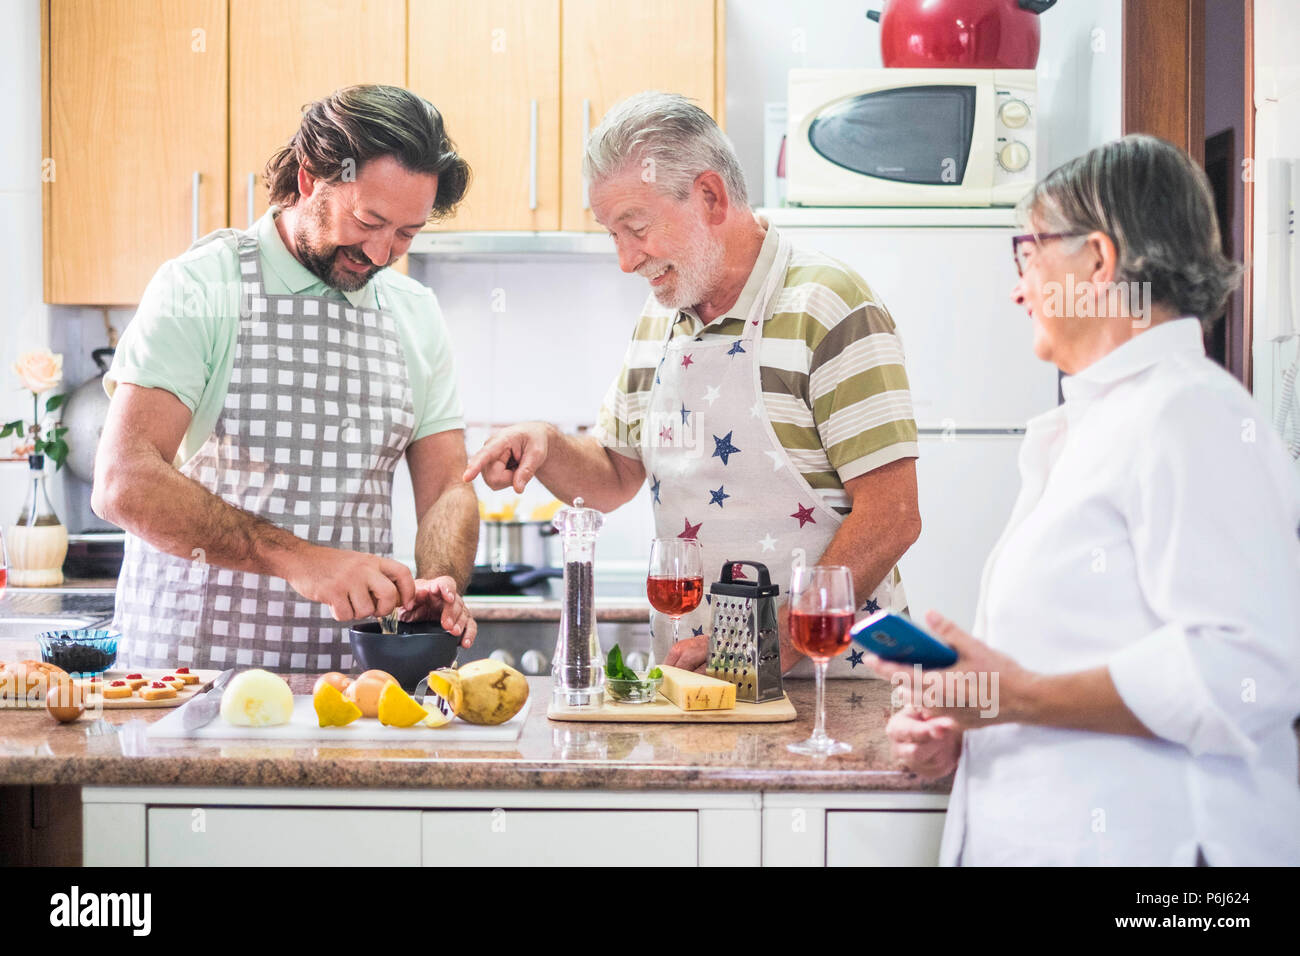 caucasian family three man people cook together lokking the how to do on the mobile phone of the mother. everybody have fun and laugh preparing someth - Stock Image